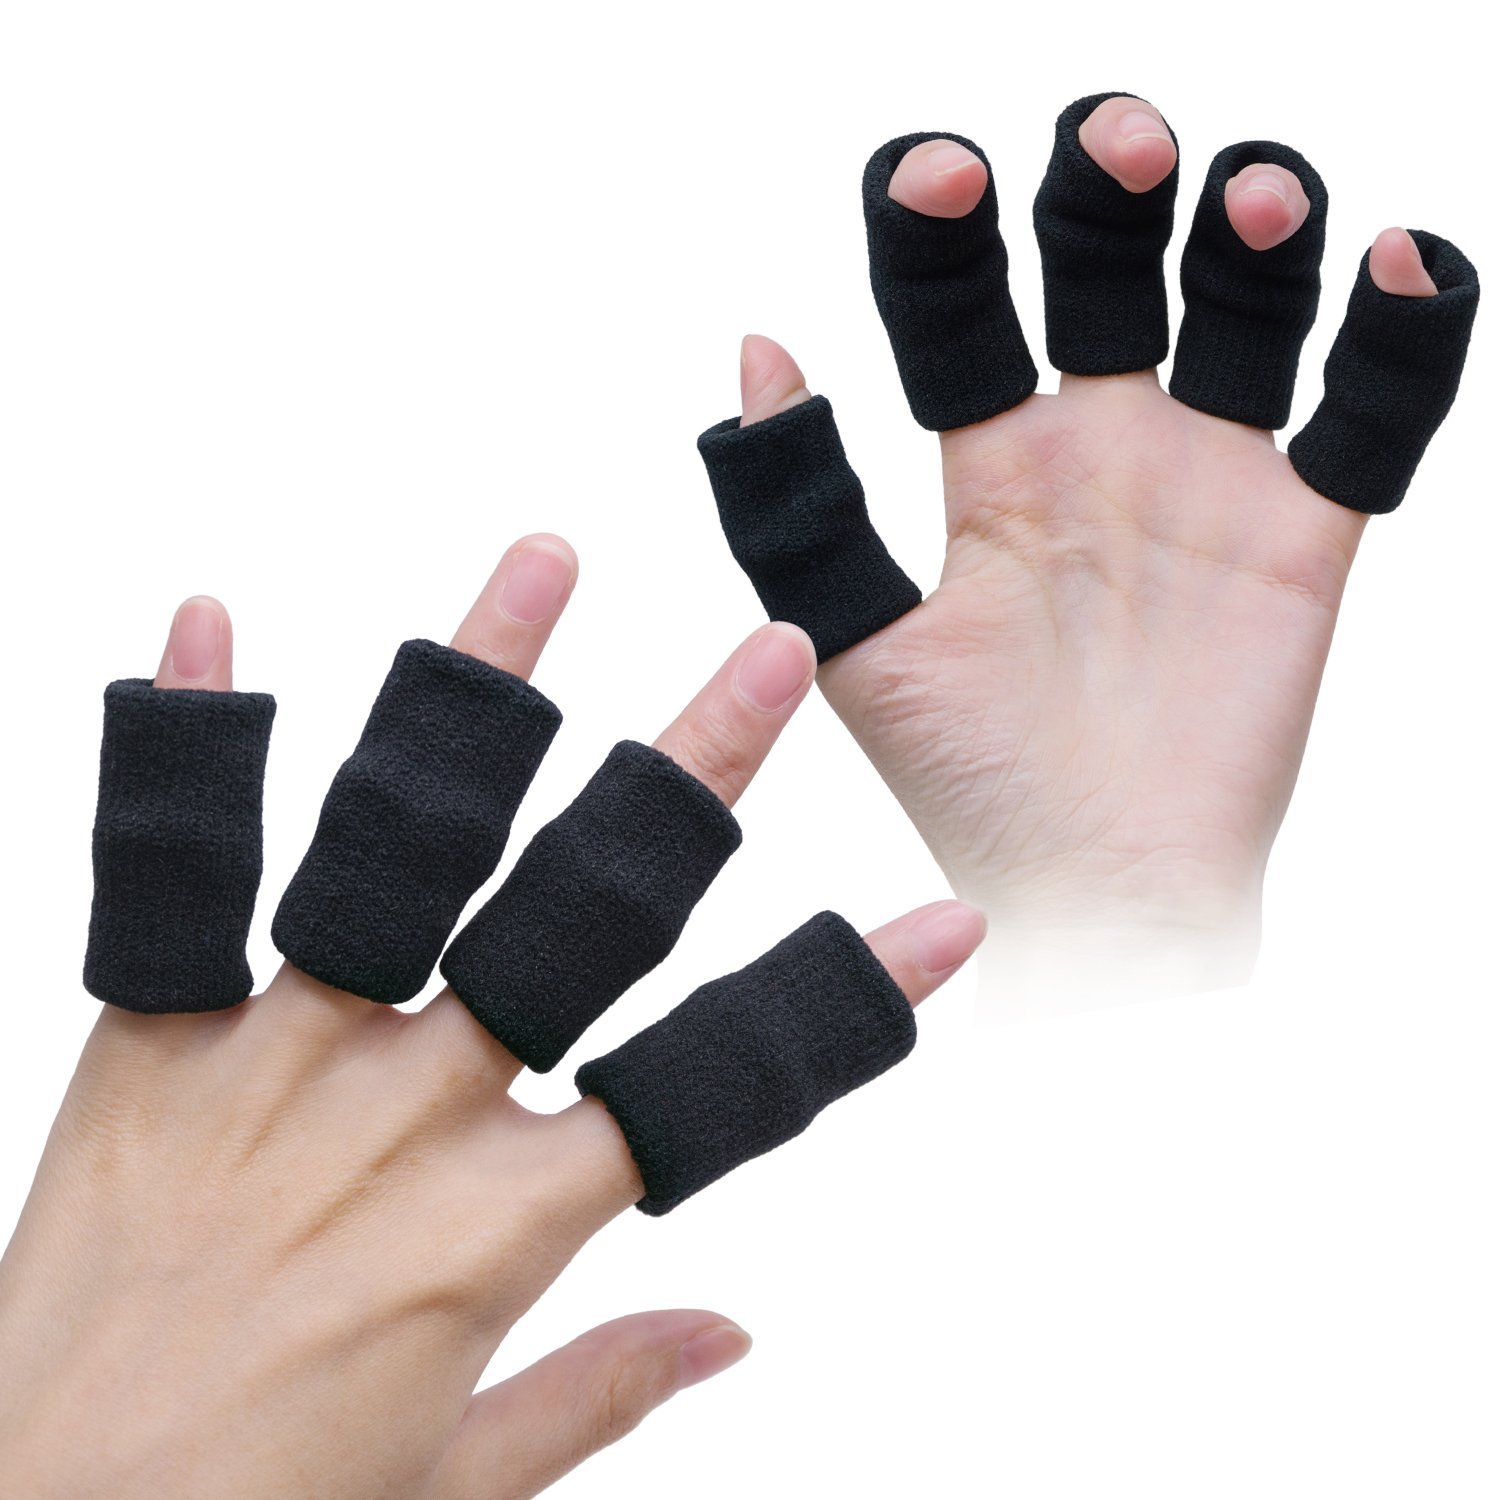 10 Pieces Finger Sleeves Elastic Finger Support Finger Brace Protector for Outdoor Activities